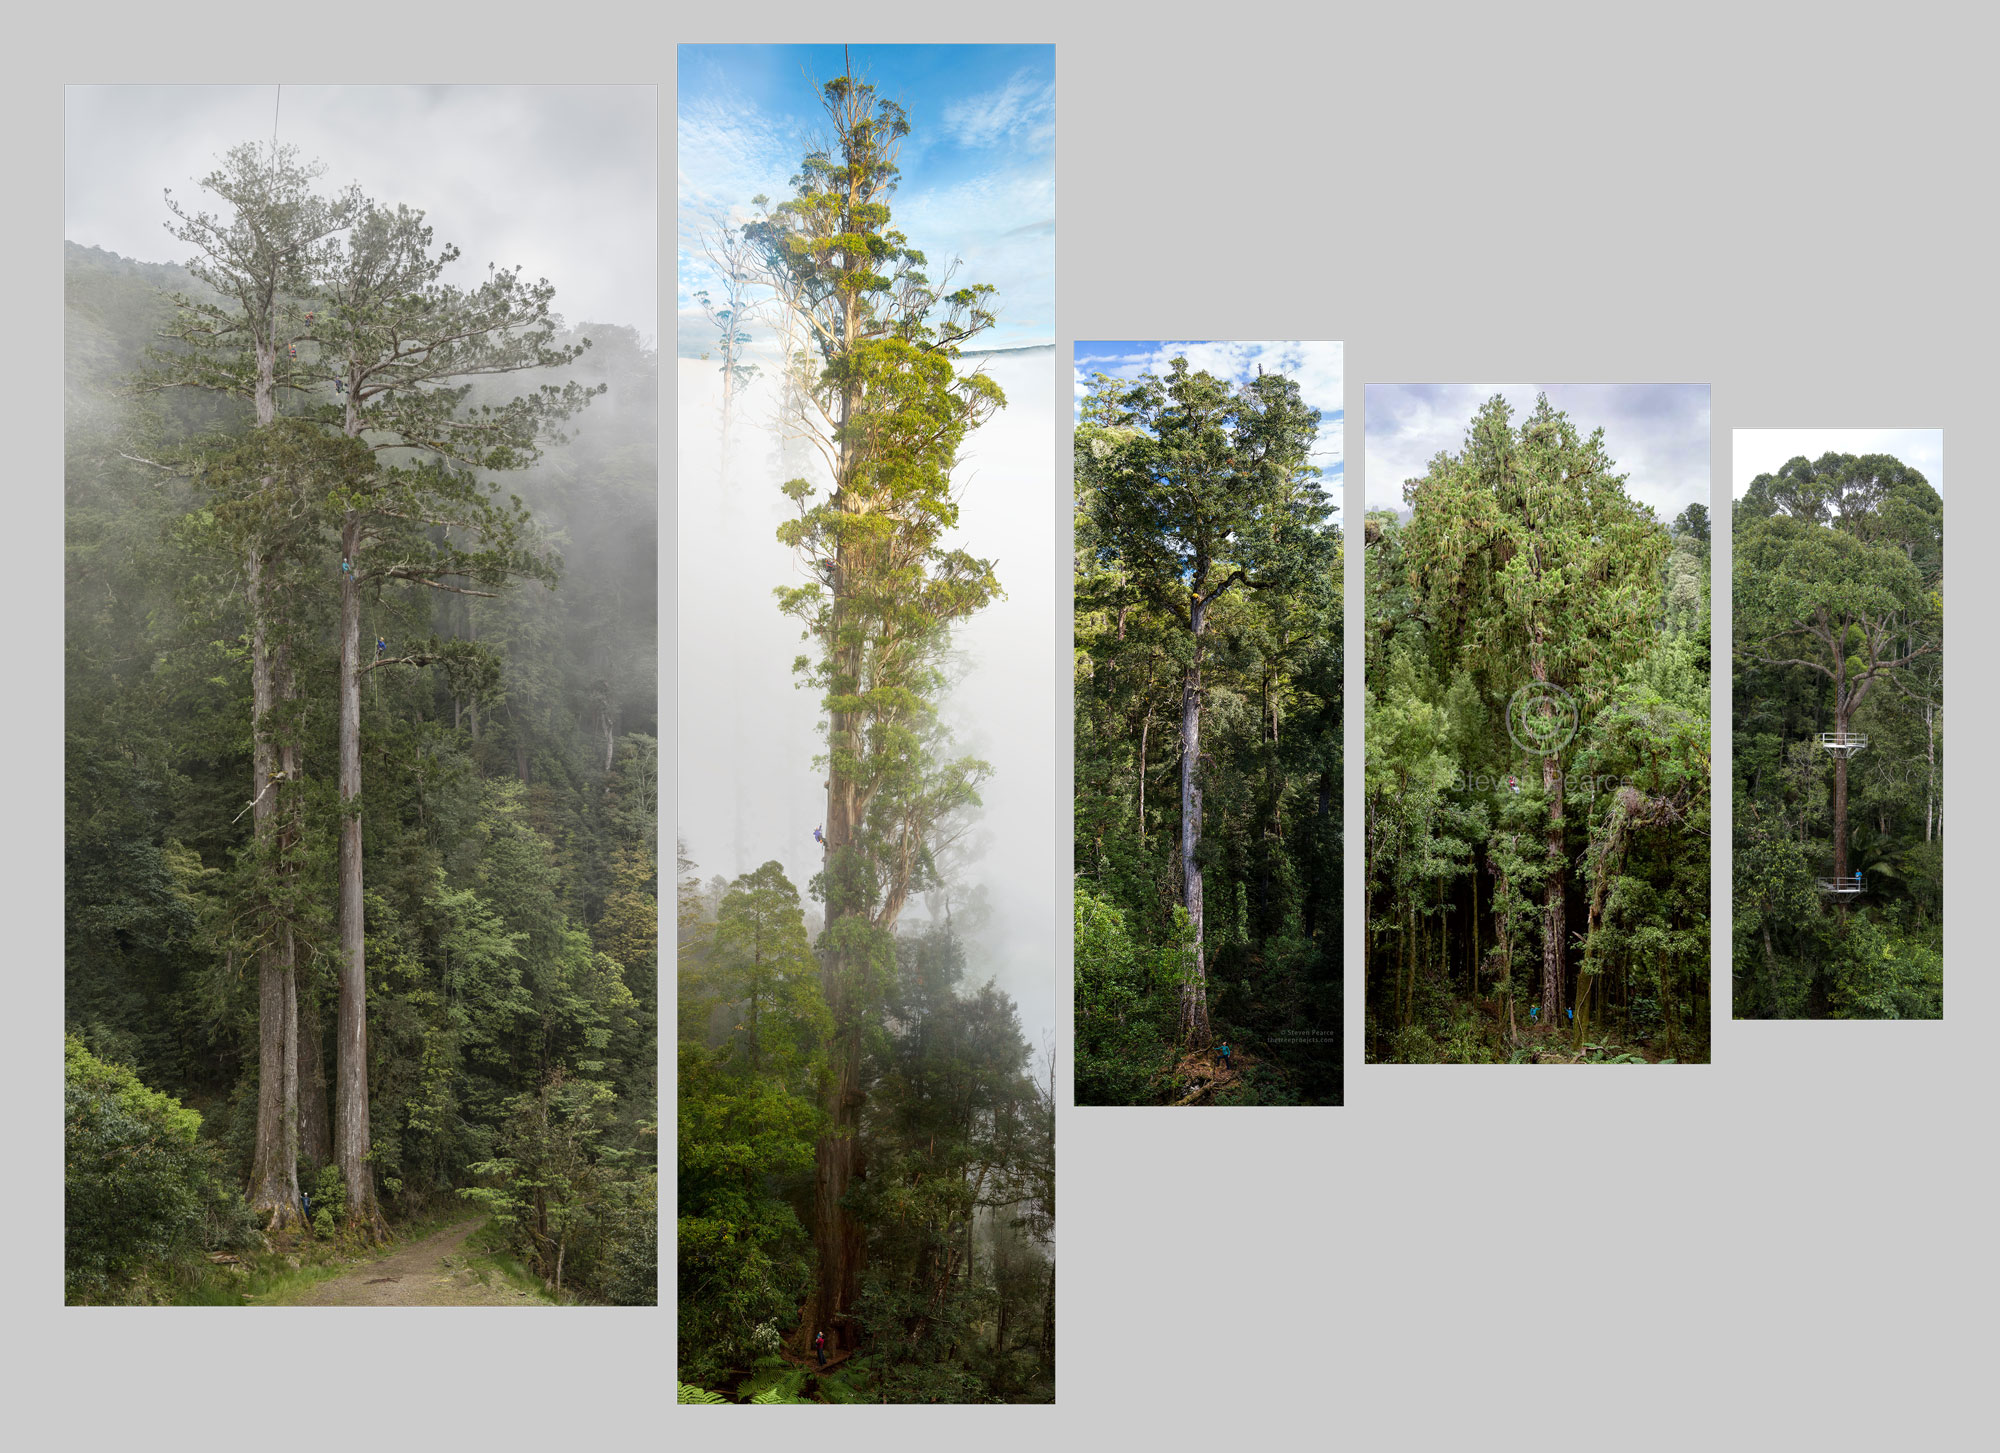 - OUR PRIMARY OUTPUT IS A 'TREE PORTRAIT' OF AN IMPRESSIVE TREE.the simple experience of seeing a giant tree for for first time can break down preconceptions. This allows an opportunity to further EDUCATE ON THE complexity and deeper ecological concepts OF FOREST ECOSYSTEMS.